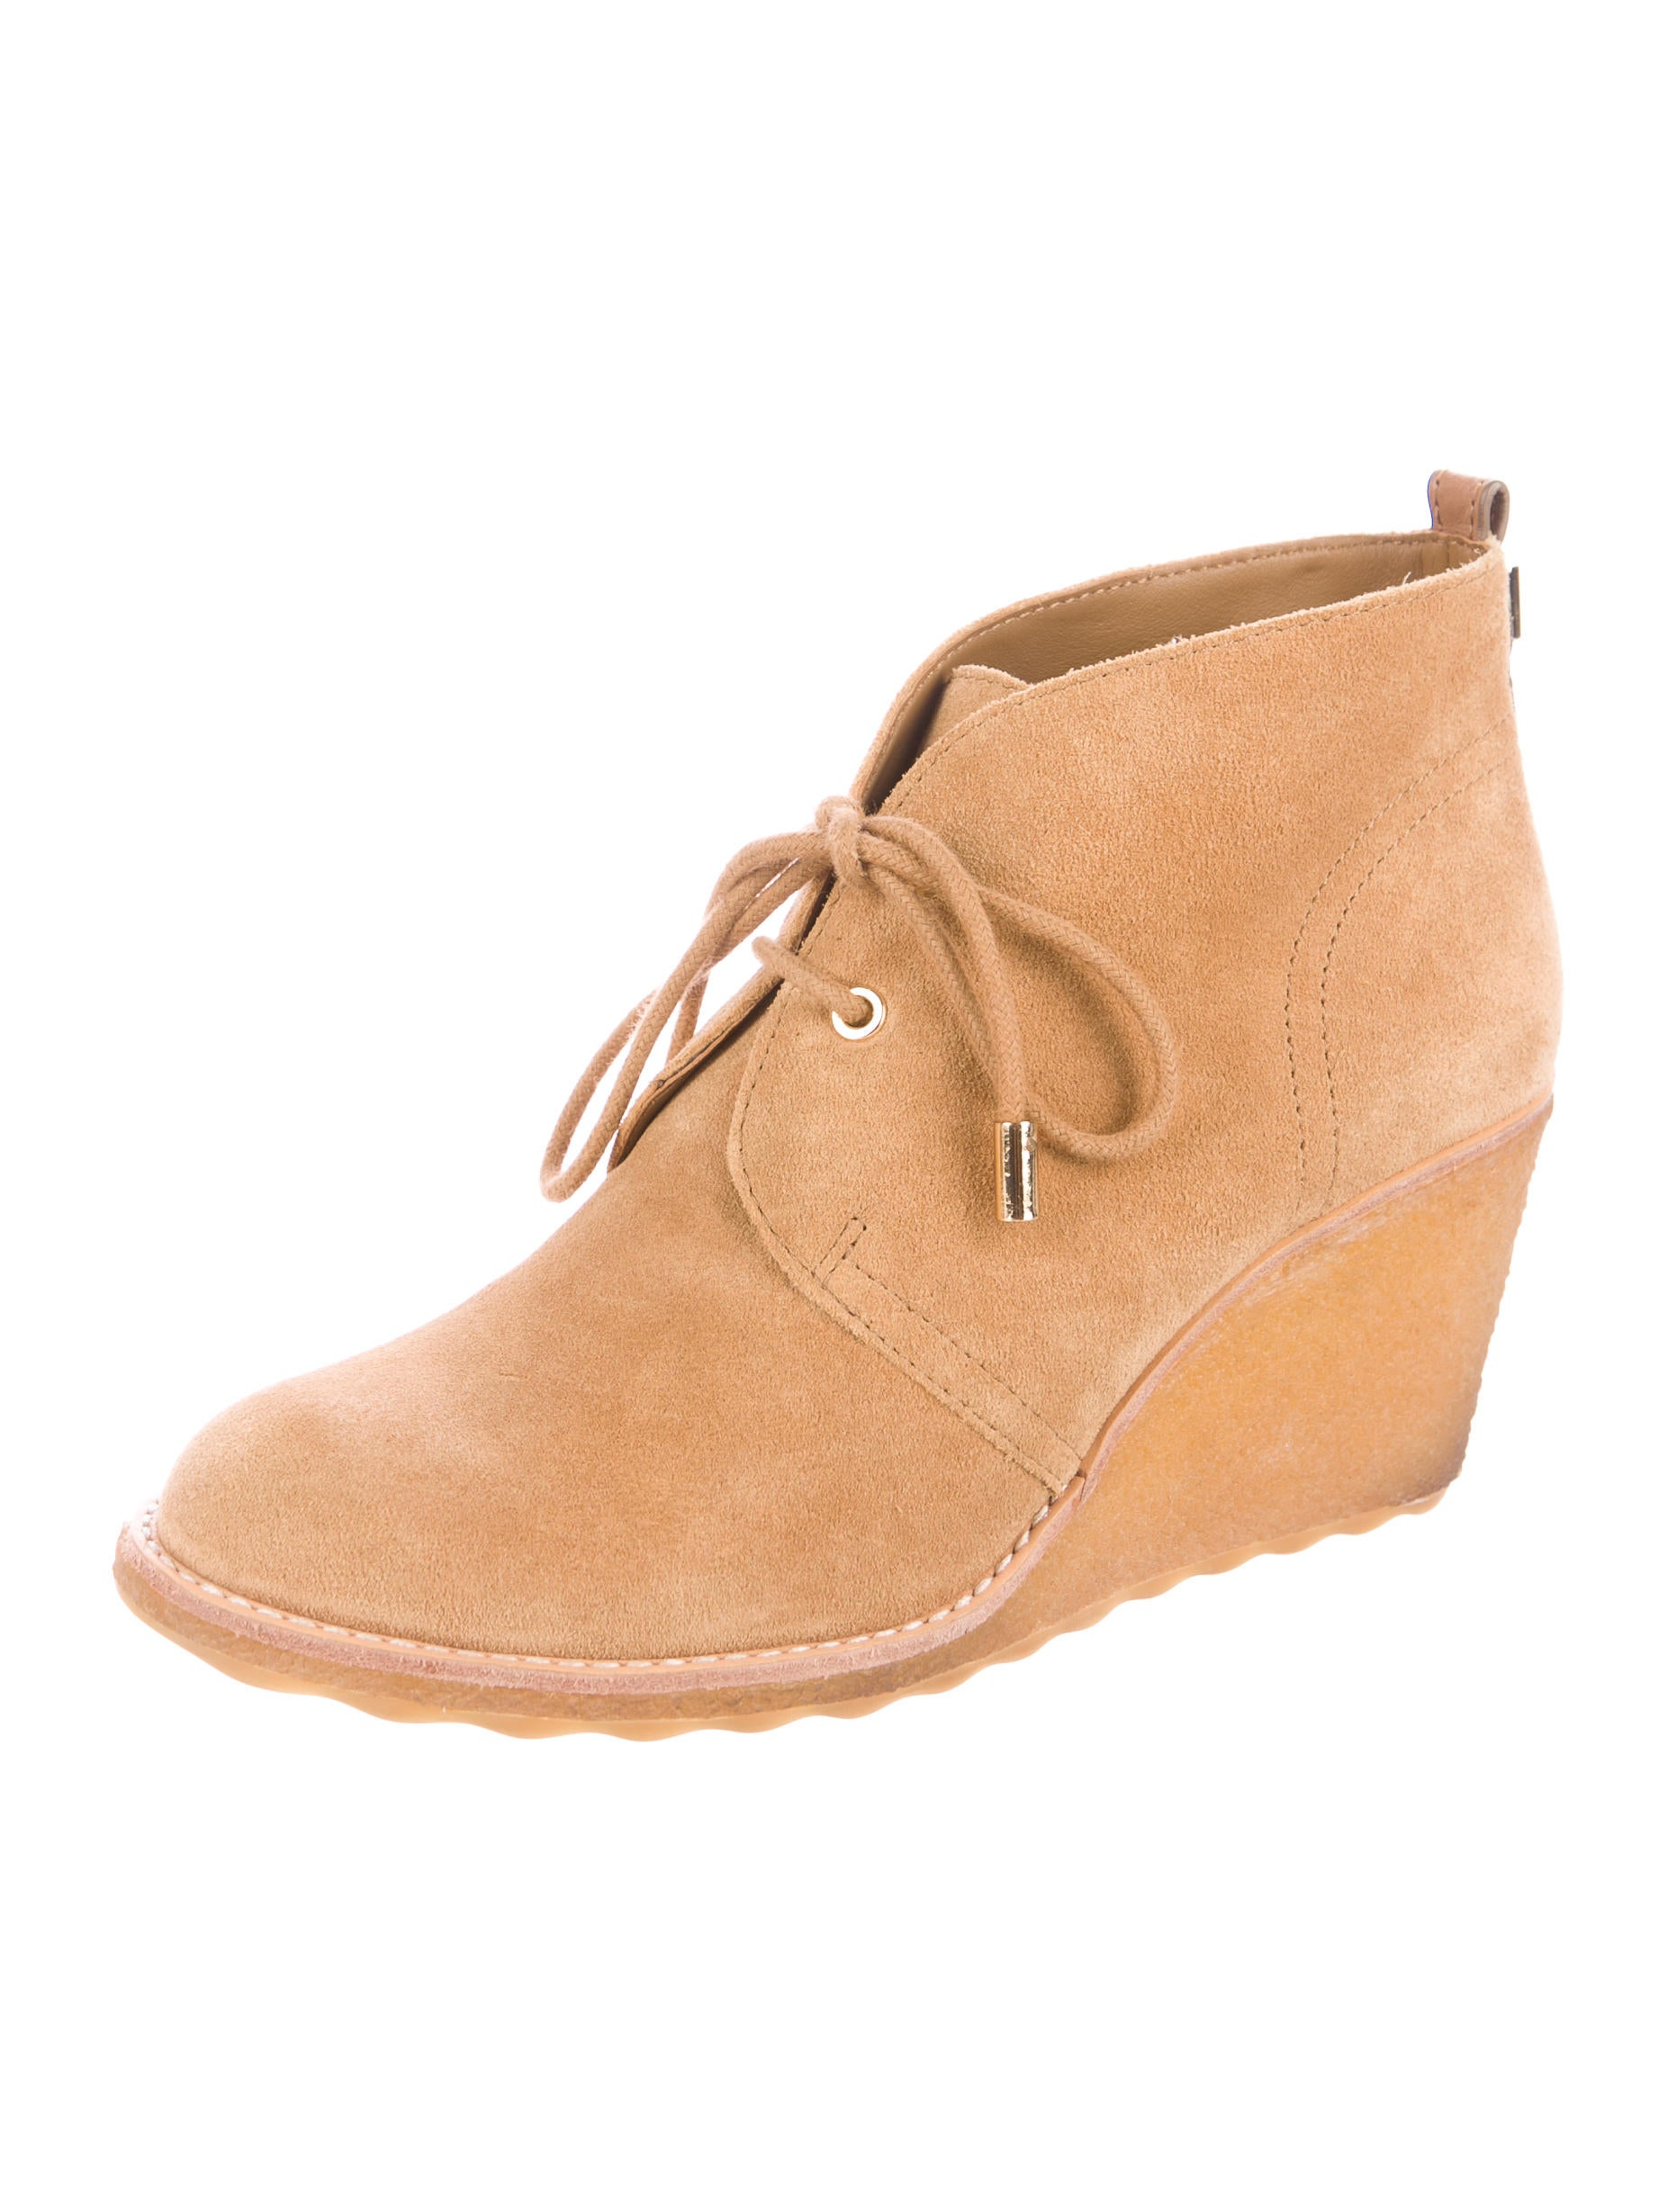 Shoespie offers Suede Wedges Booties. Nowadays fashion best Suede Wedges Booties collection here. Now buy Suede Wedges Booties enjoy free shipping super deals!